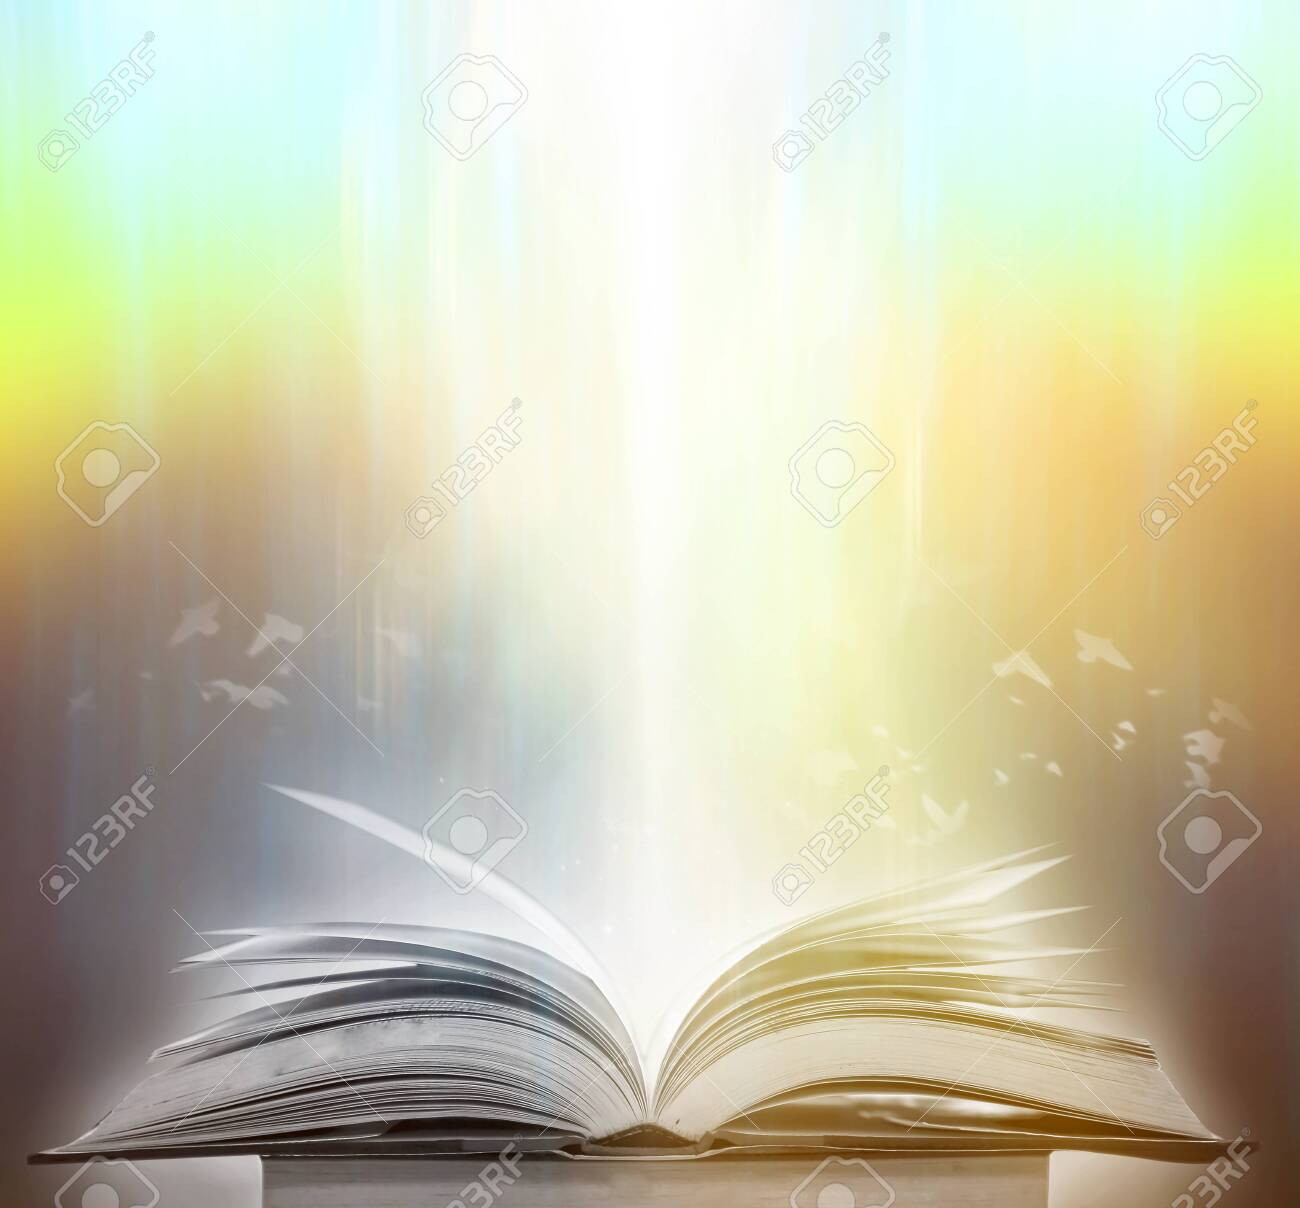 The blurred book that is bewitched with magic, the magic light in the dark, with the bright light shining down as the power to search for knowledge. For research and use as a blurred background - 137059146